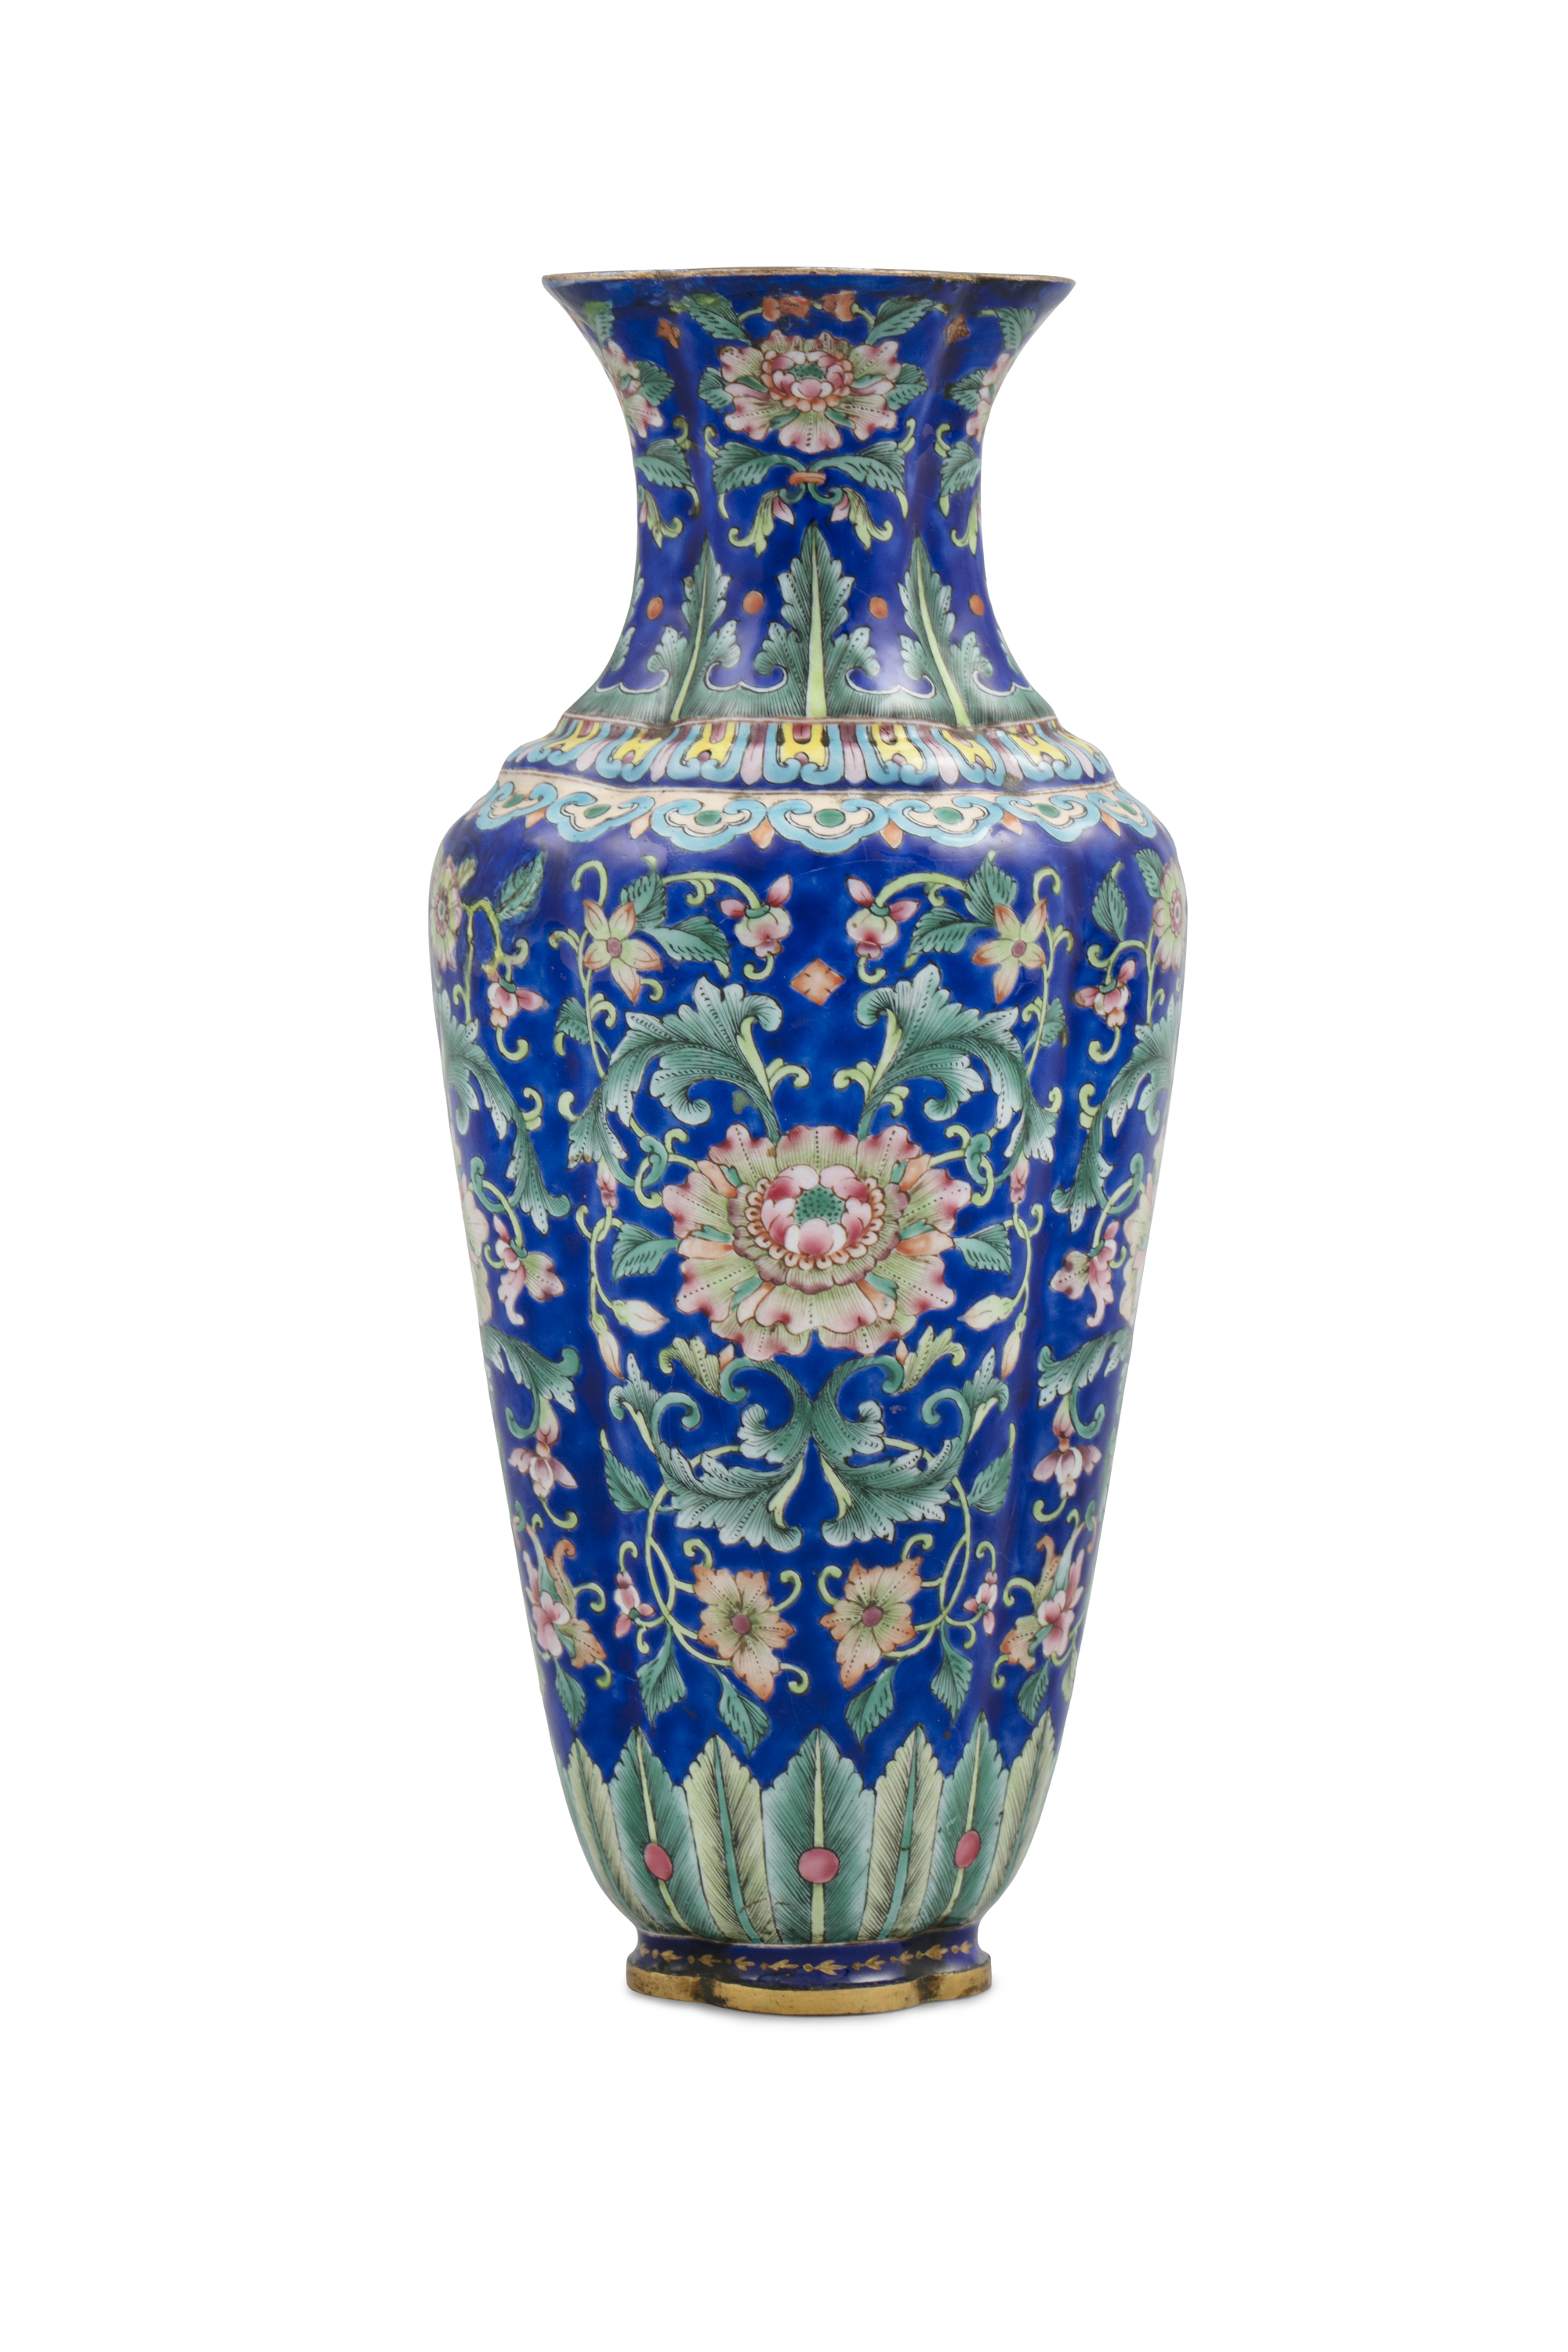 AN ENAMELED COPPER QUATREFOIL VASE China, Beijing, Qing Dynasty, 18th to 19th century Richly adorned - Image 2 of 11